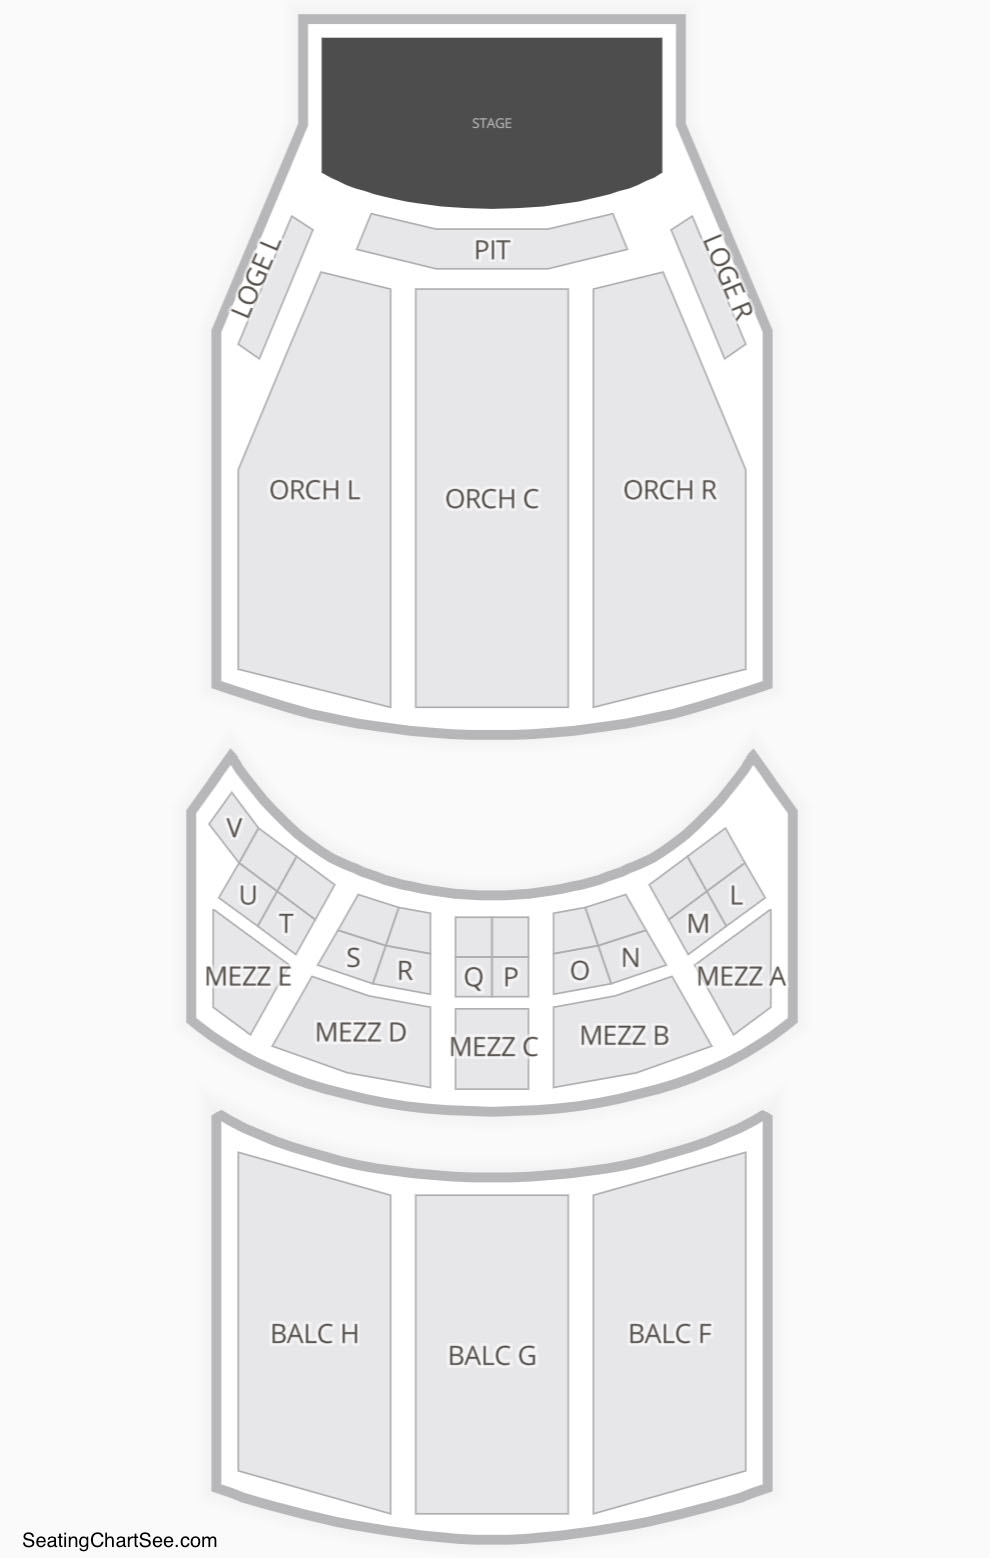 Majestic Theatre Dallas Seating Chart Seating Charts